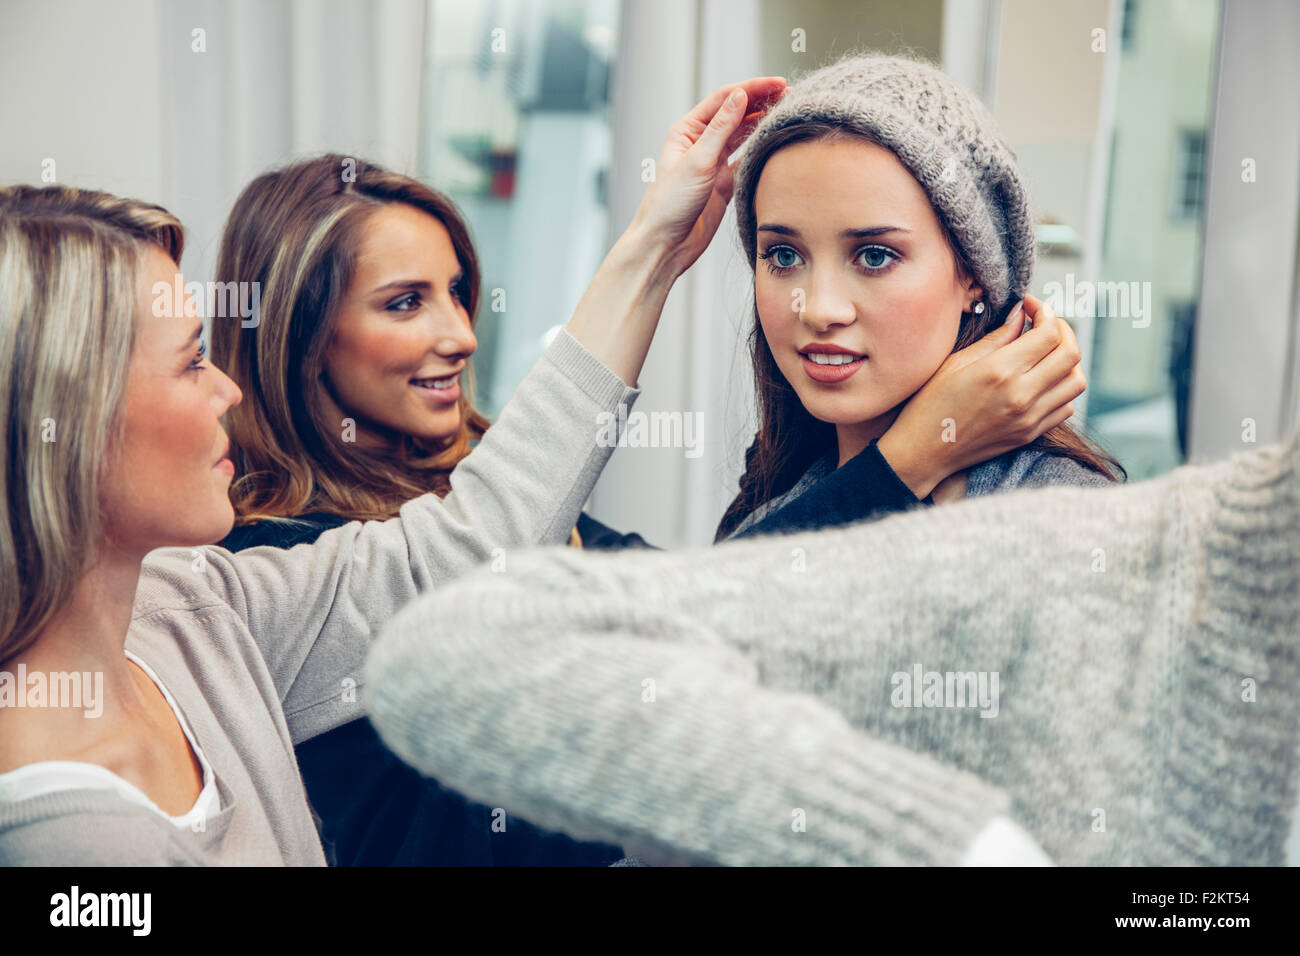 Young woman putting on woolly hat in a boutique assisted by two women - Stock Image